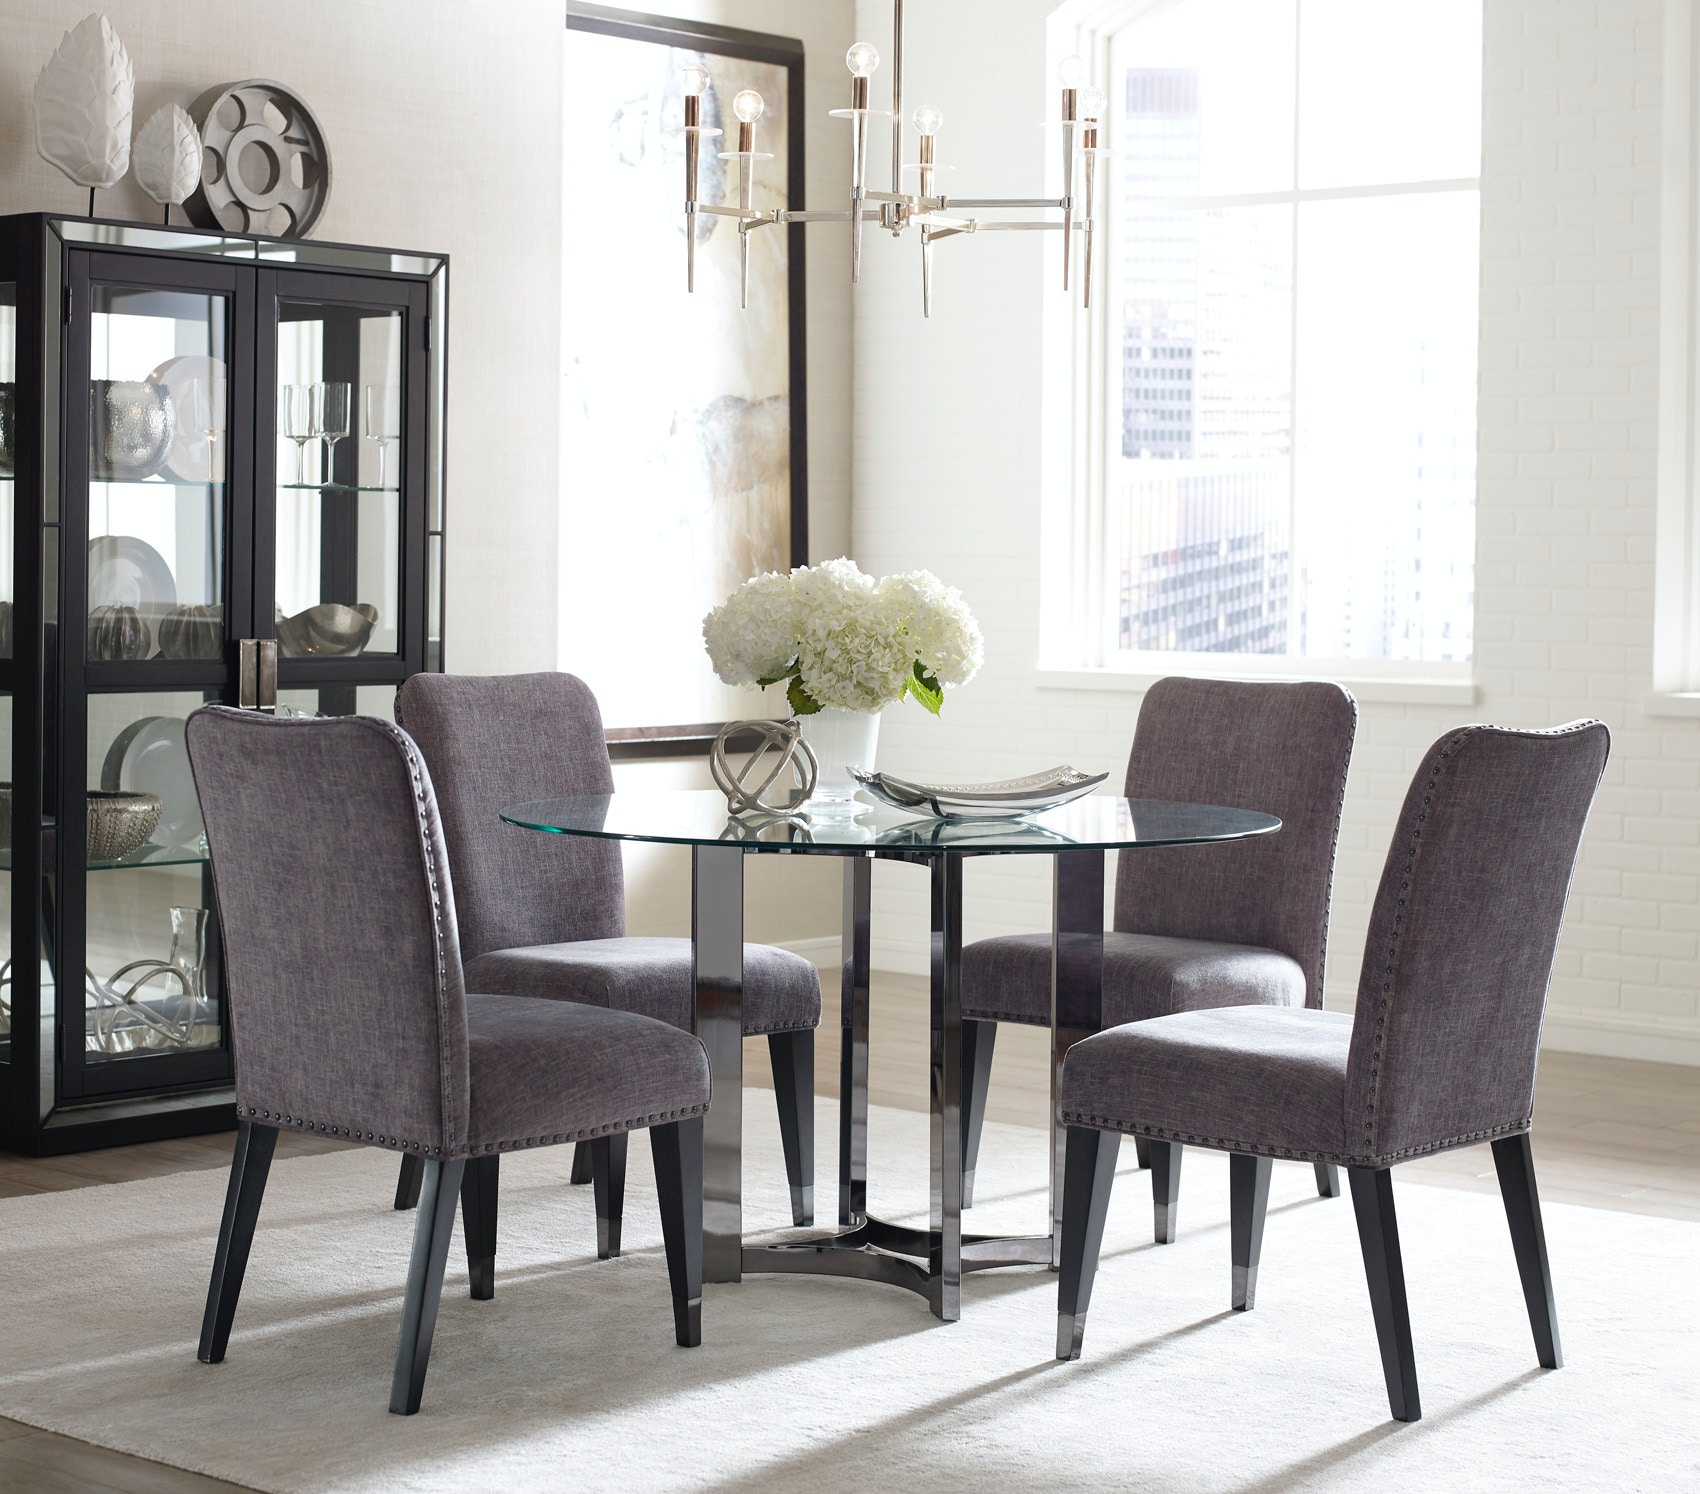 Pulaski Furniture Silverton Sound Round Dining Set 510903